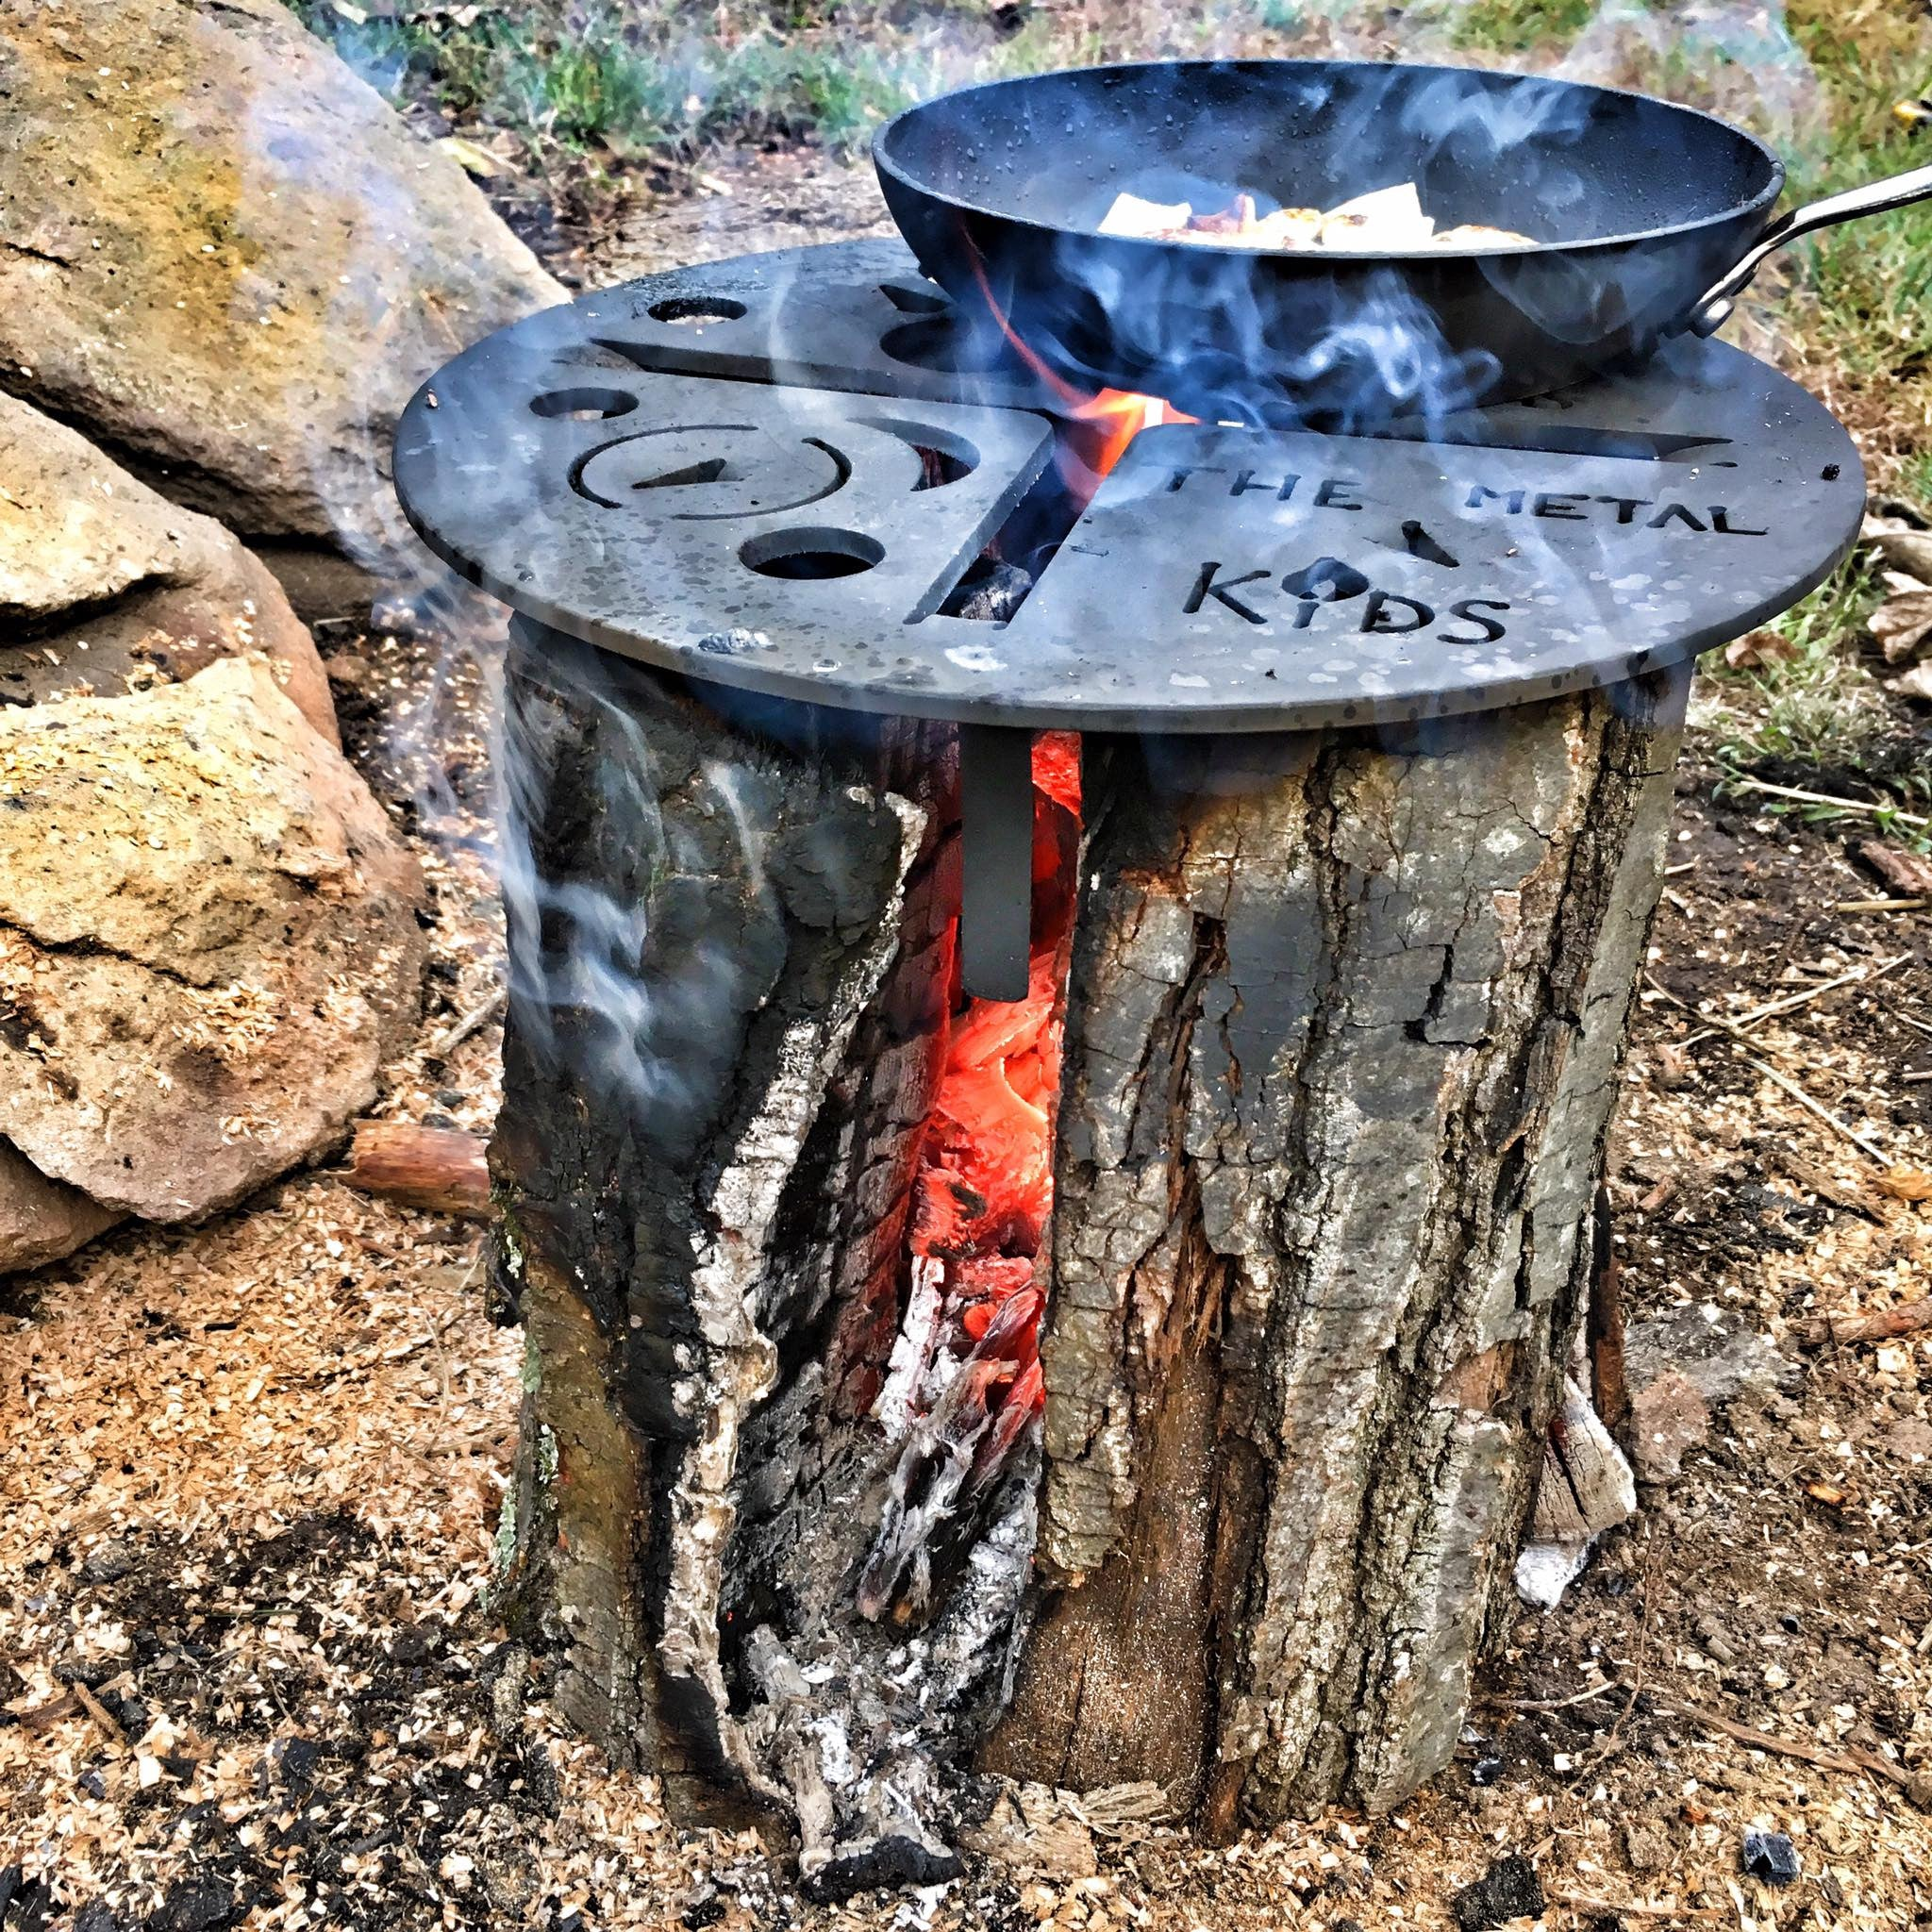 The SpacePlate - Log Powered rocket stove - Camp Grill – TheMetalKids